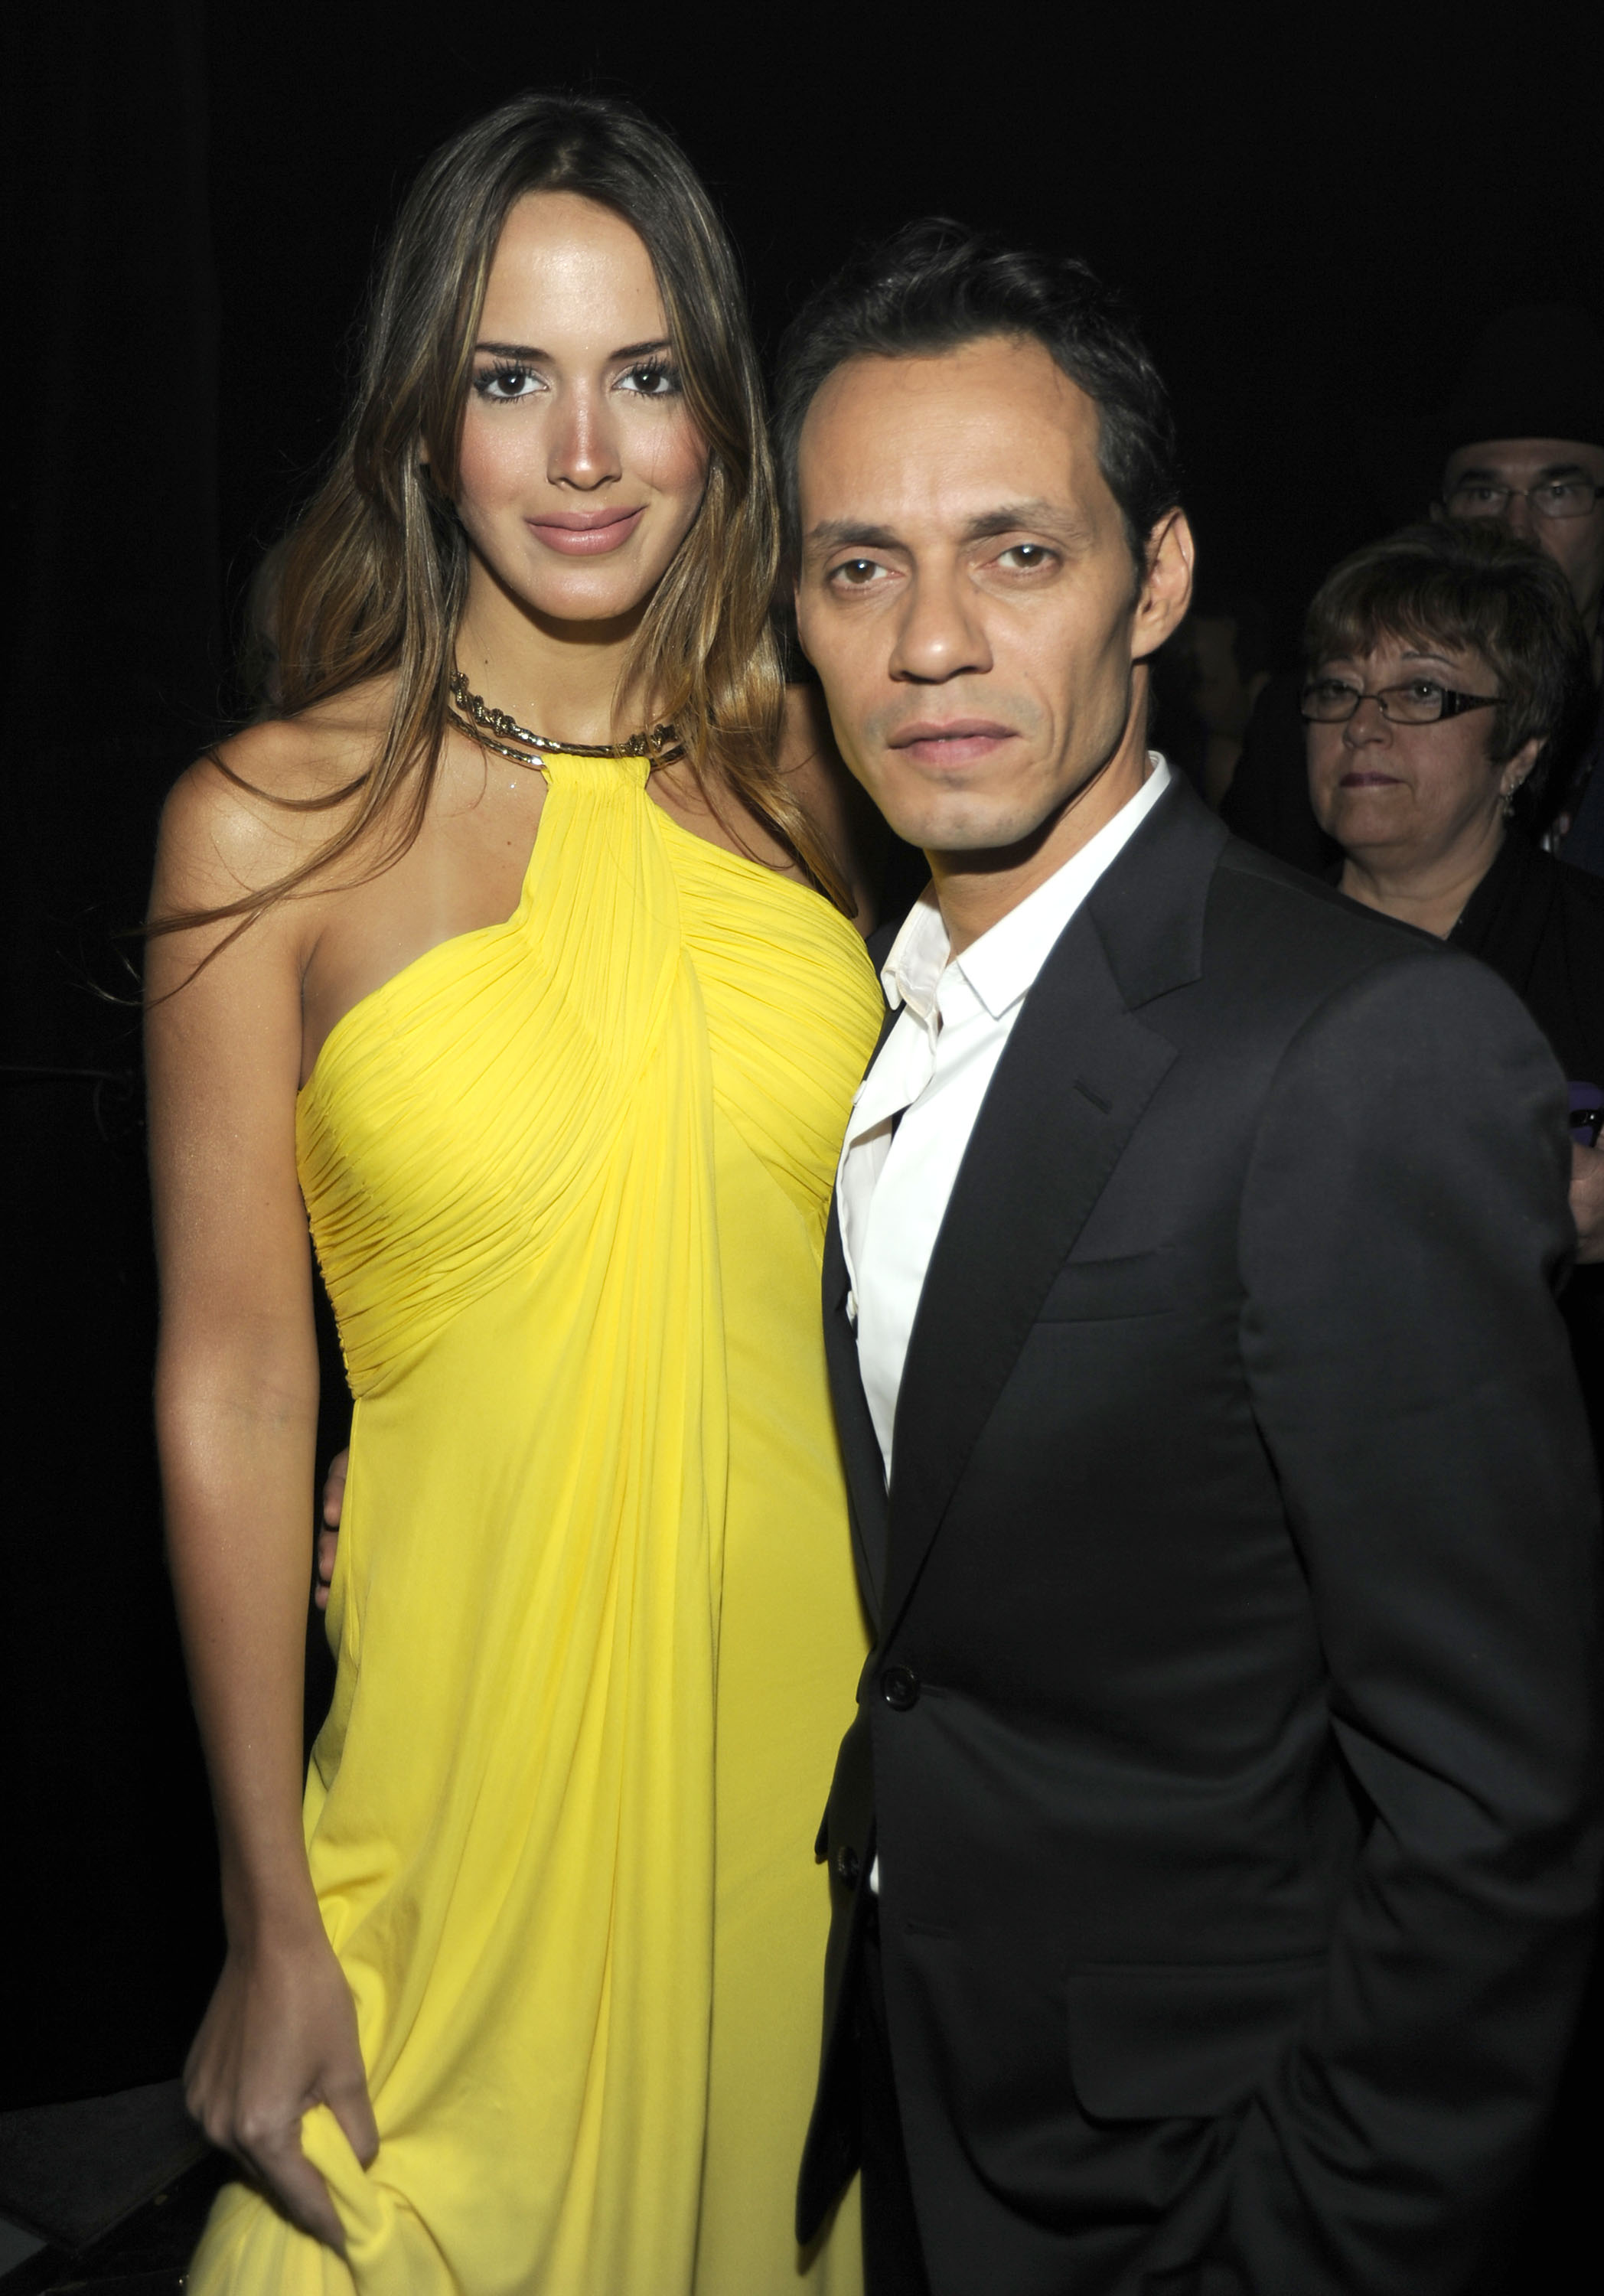 Marc anthony dating a dominicana dominican